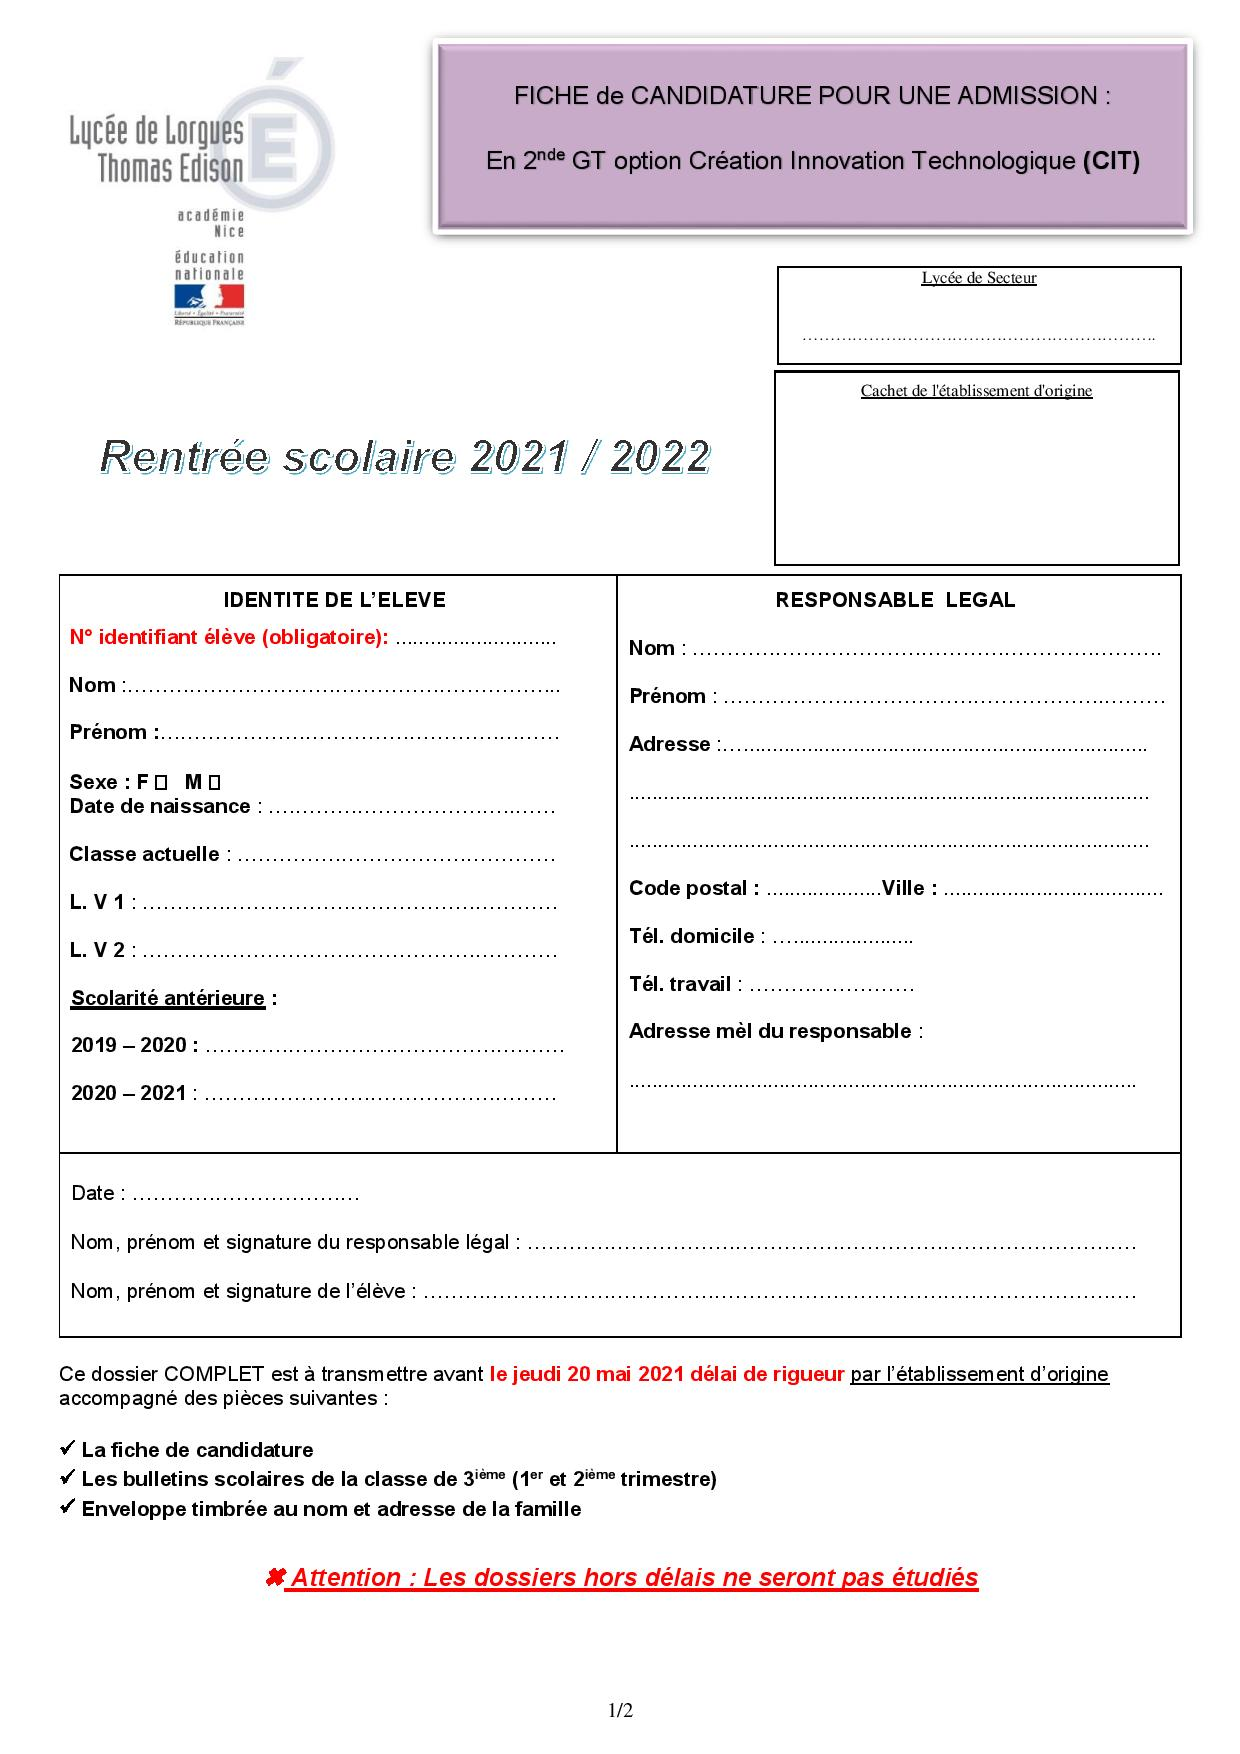 Dossier candidature 2nd OPTION CIT (2021 22)